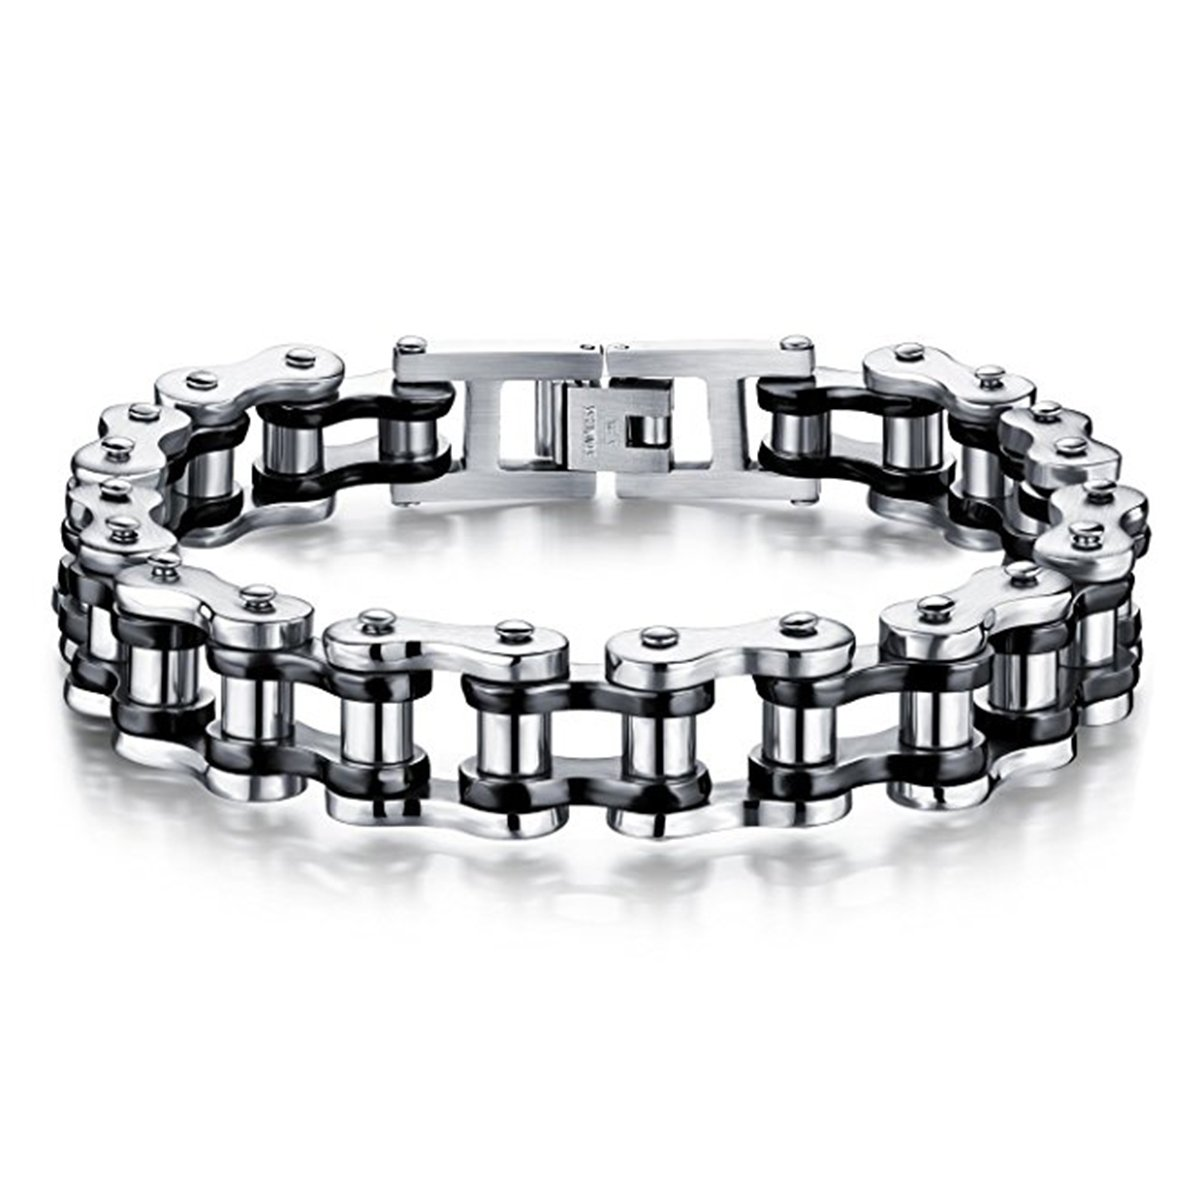 Feraco Mens Bikers Bracelet Stainless Steel Motorcycle Bike Chain Bracelets 8.4 Inch, Black&Silver AJ151201B-SB